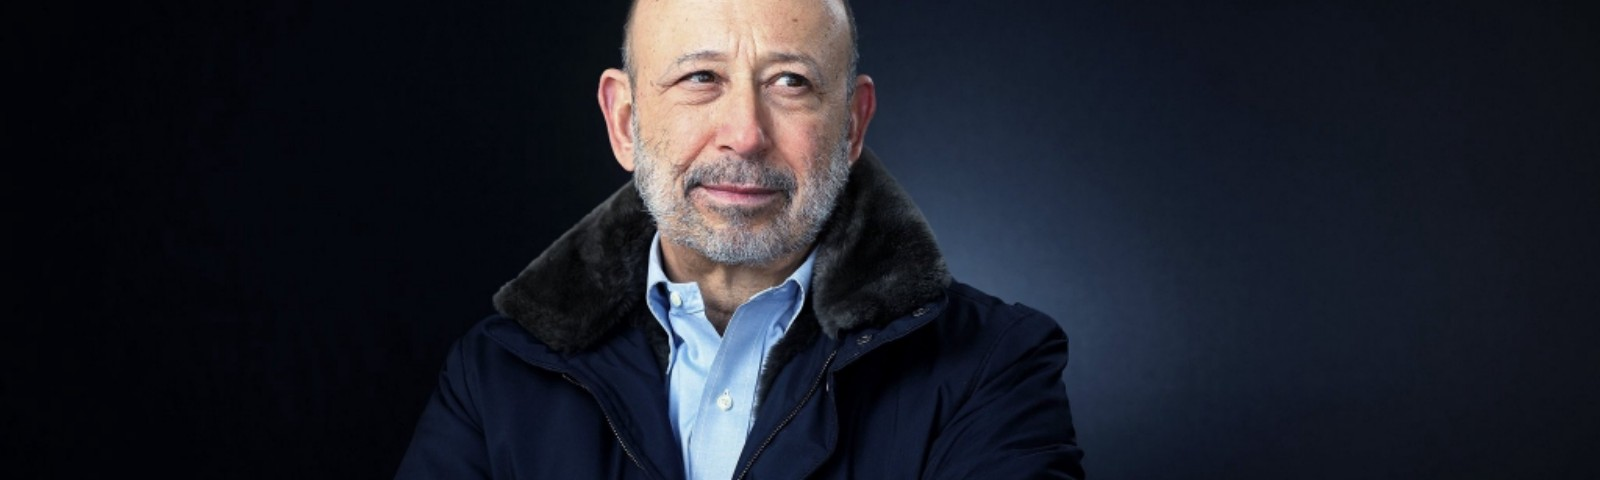 Goldman links Blankfein pay to beating rivals